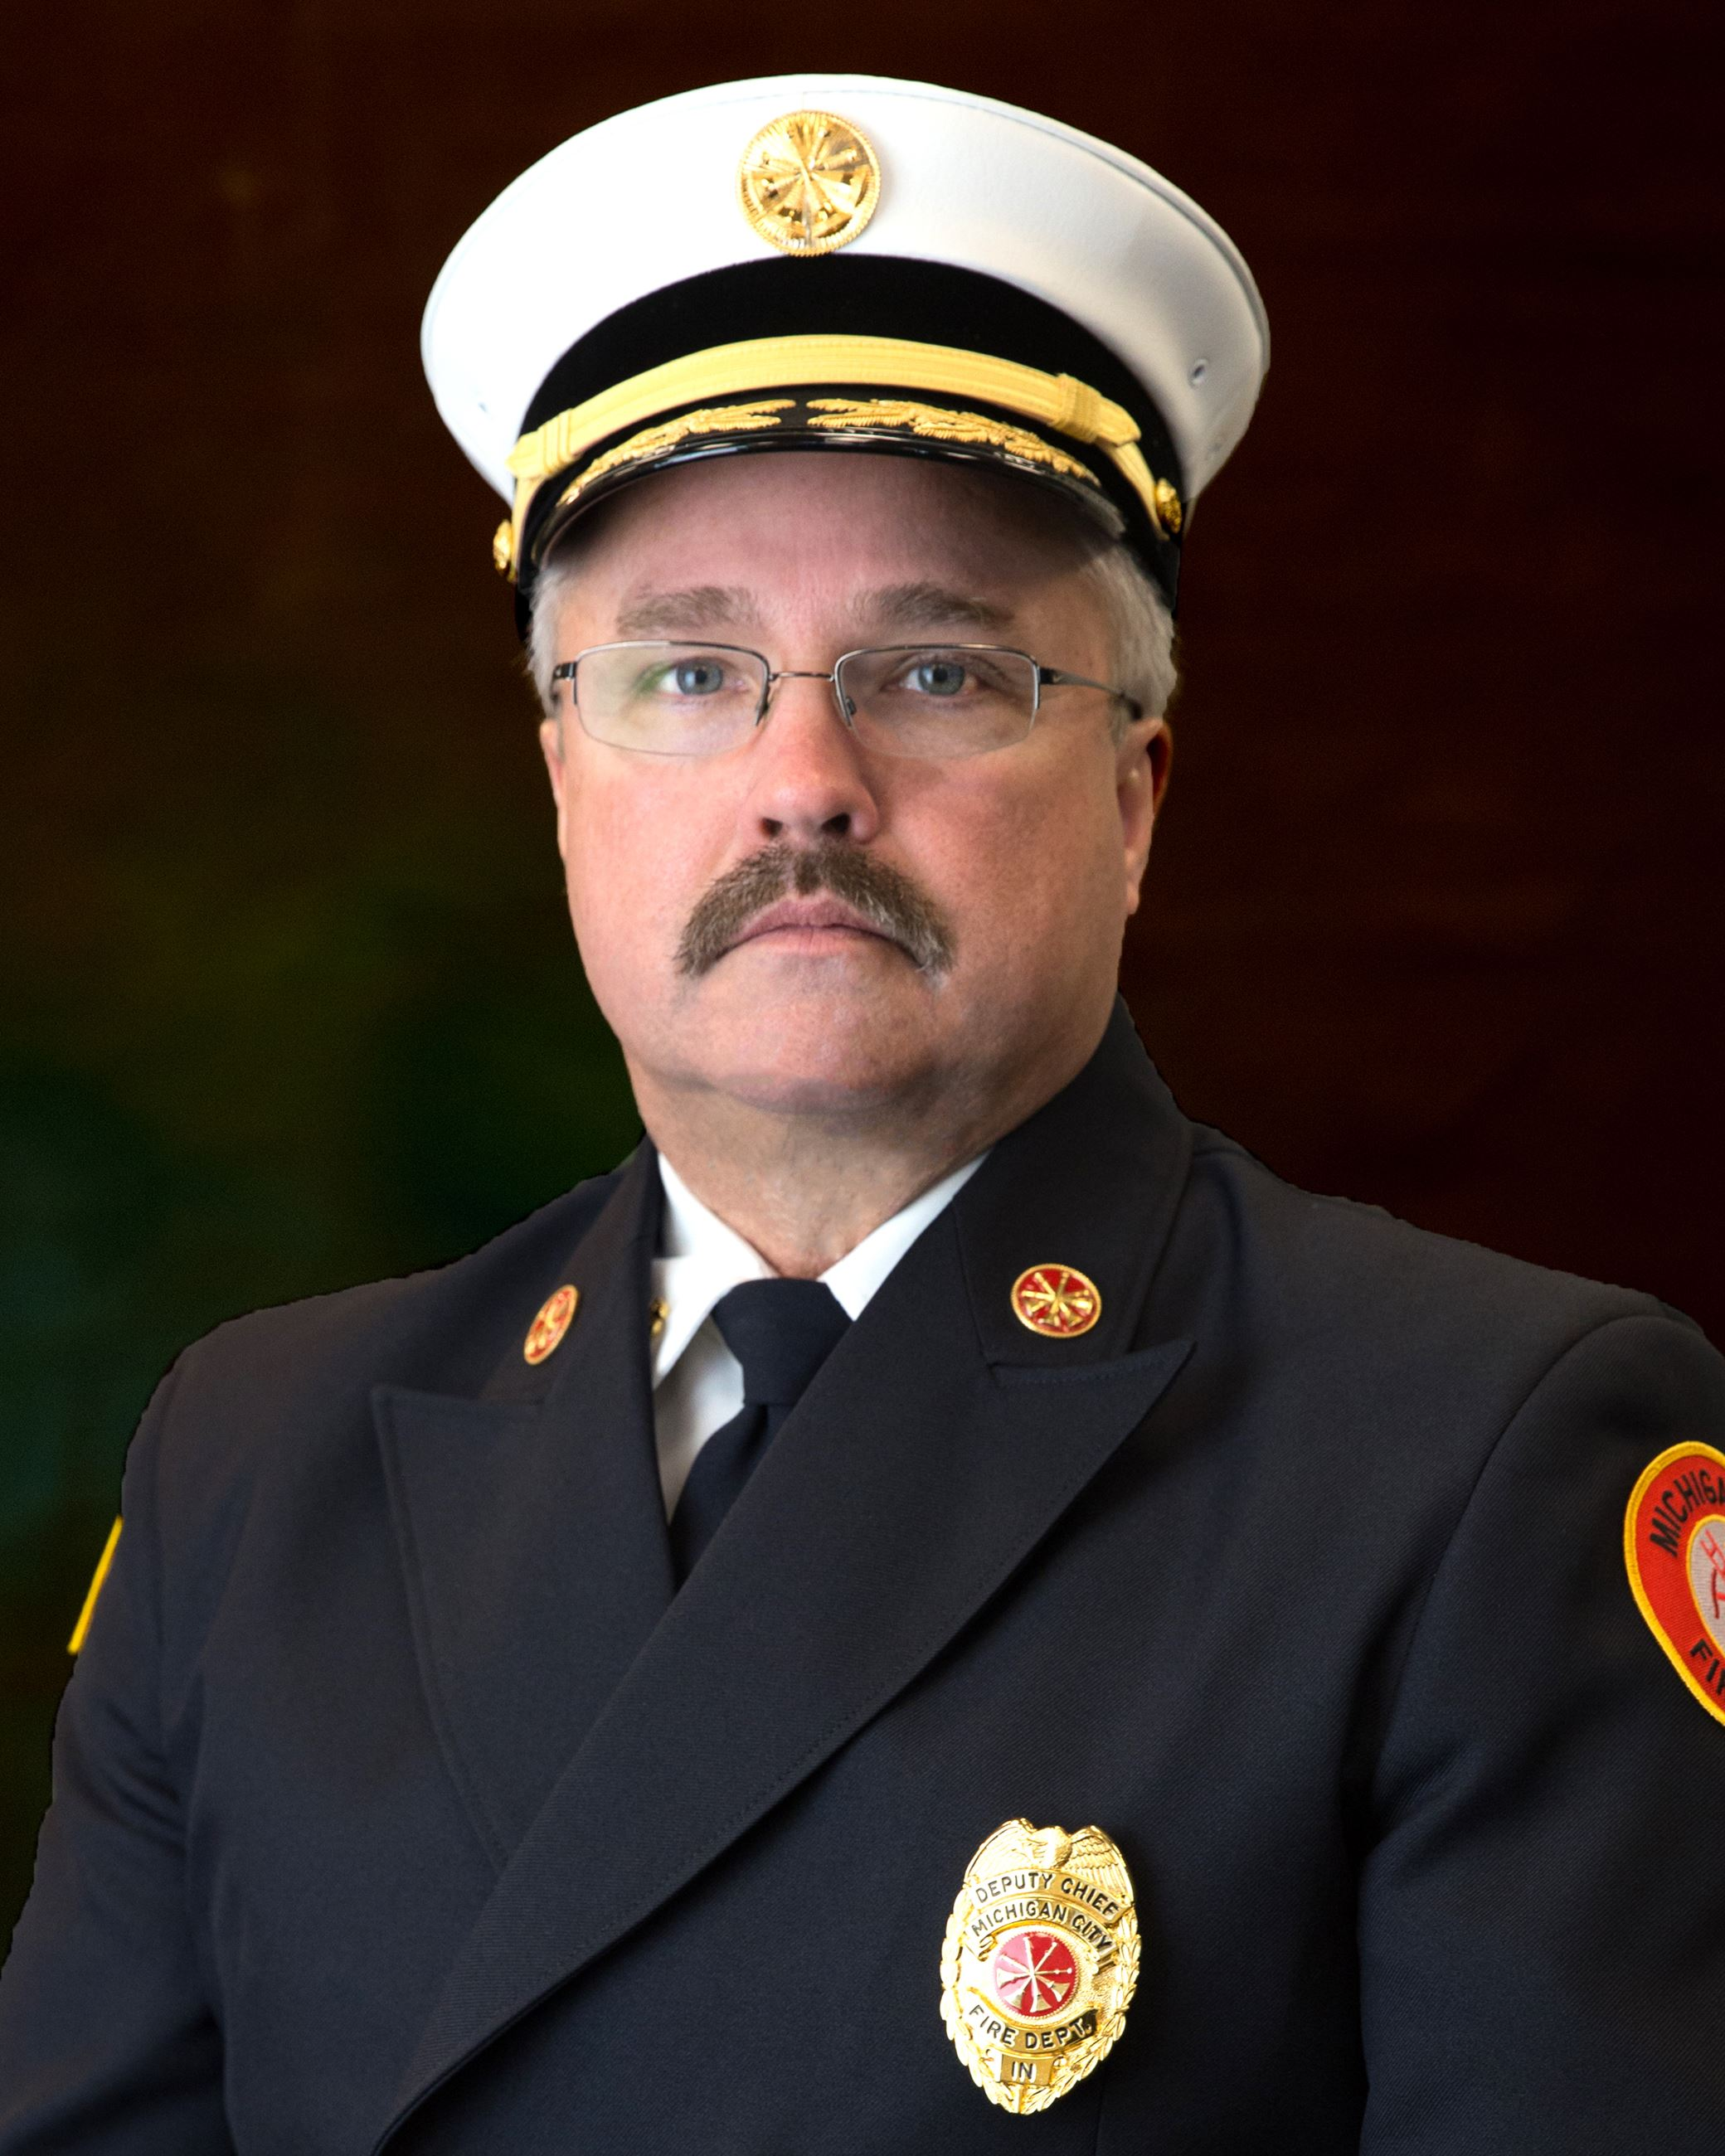 J. Cox, Deputy Fire Chief